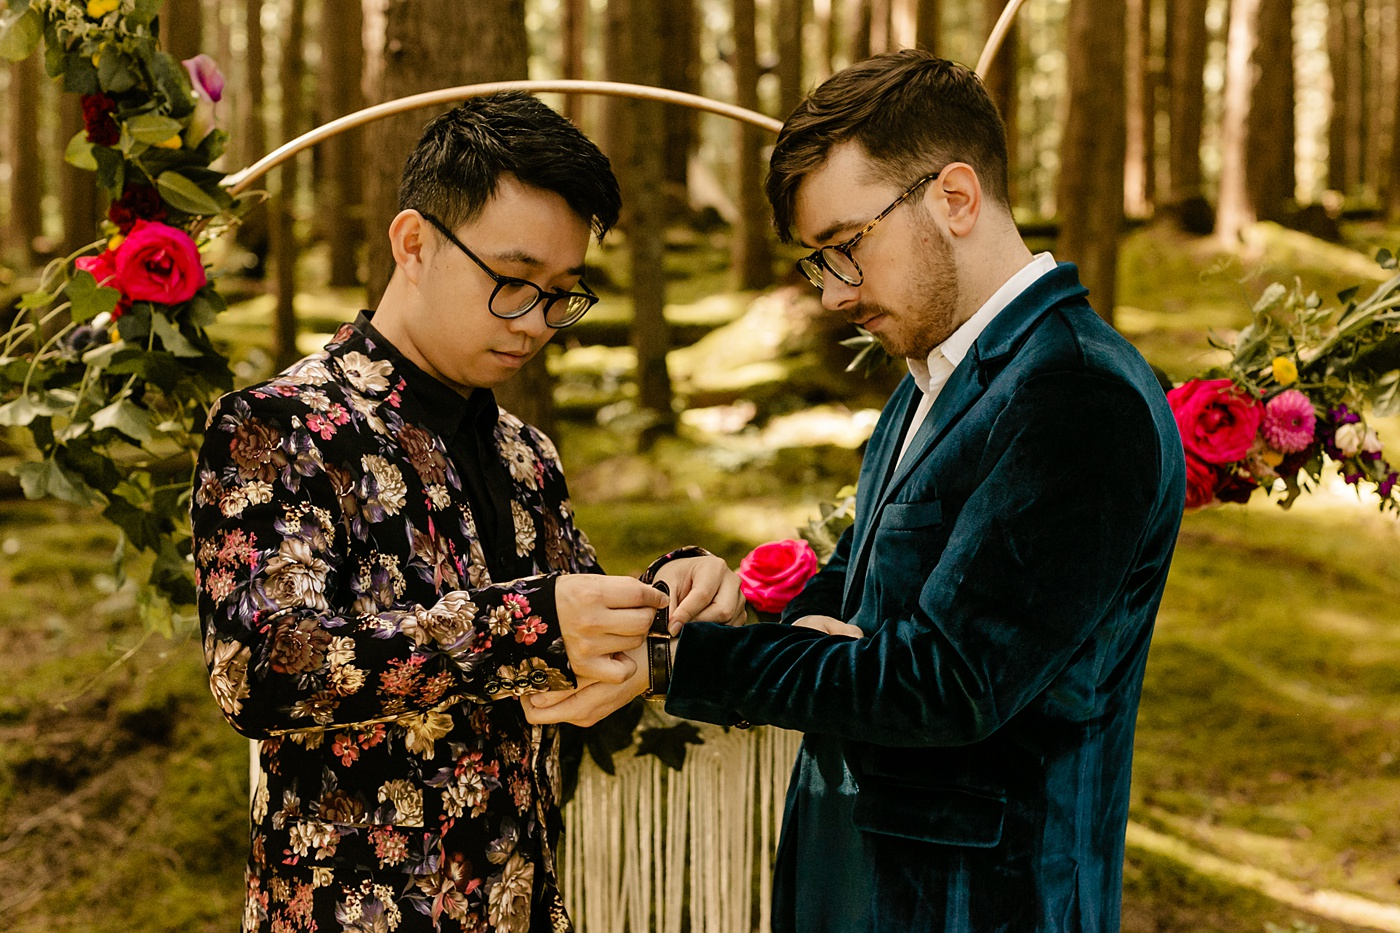 unique ceremony ideas exchanging watches instead of rings